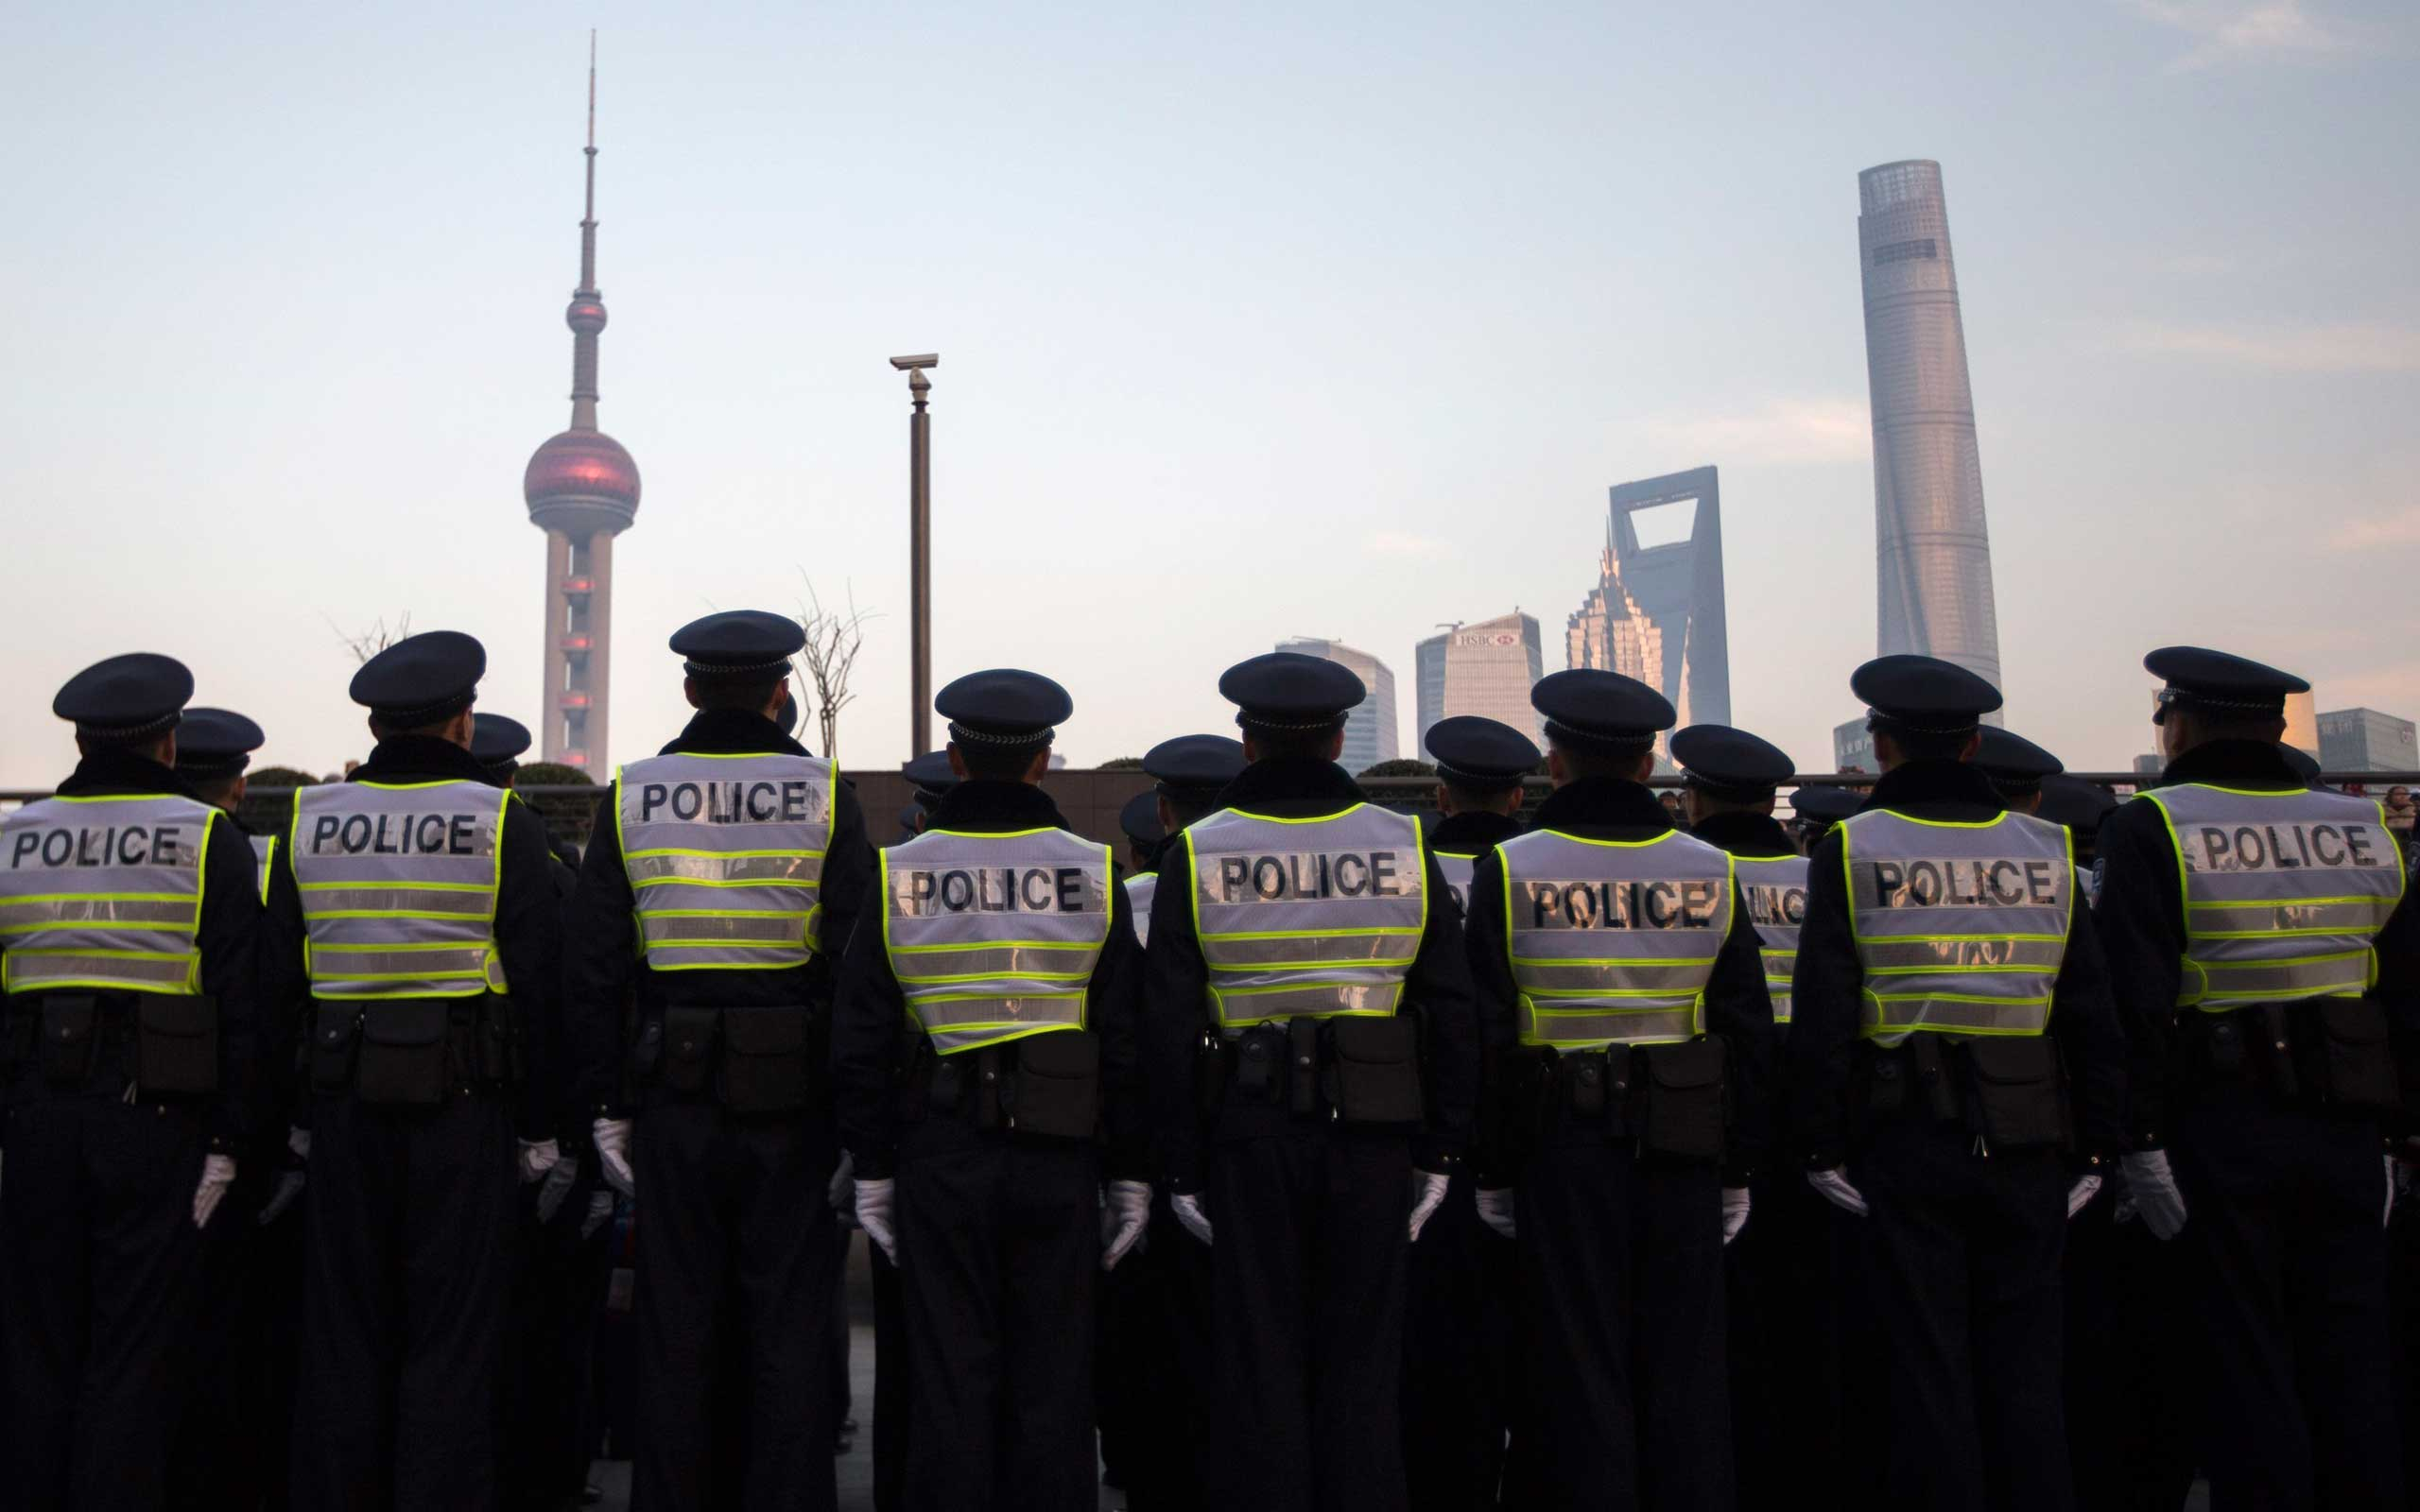 Policemen stand in formation as they guard on the bund where people were killed in a stampede incident during a new year's celebration, in Shanghai on Jan. 3, 2015.